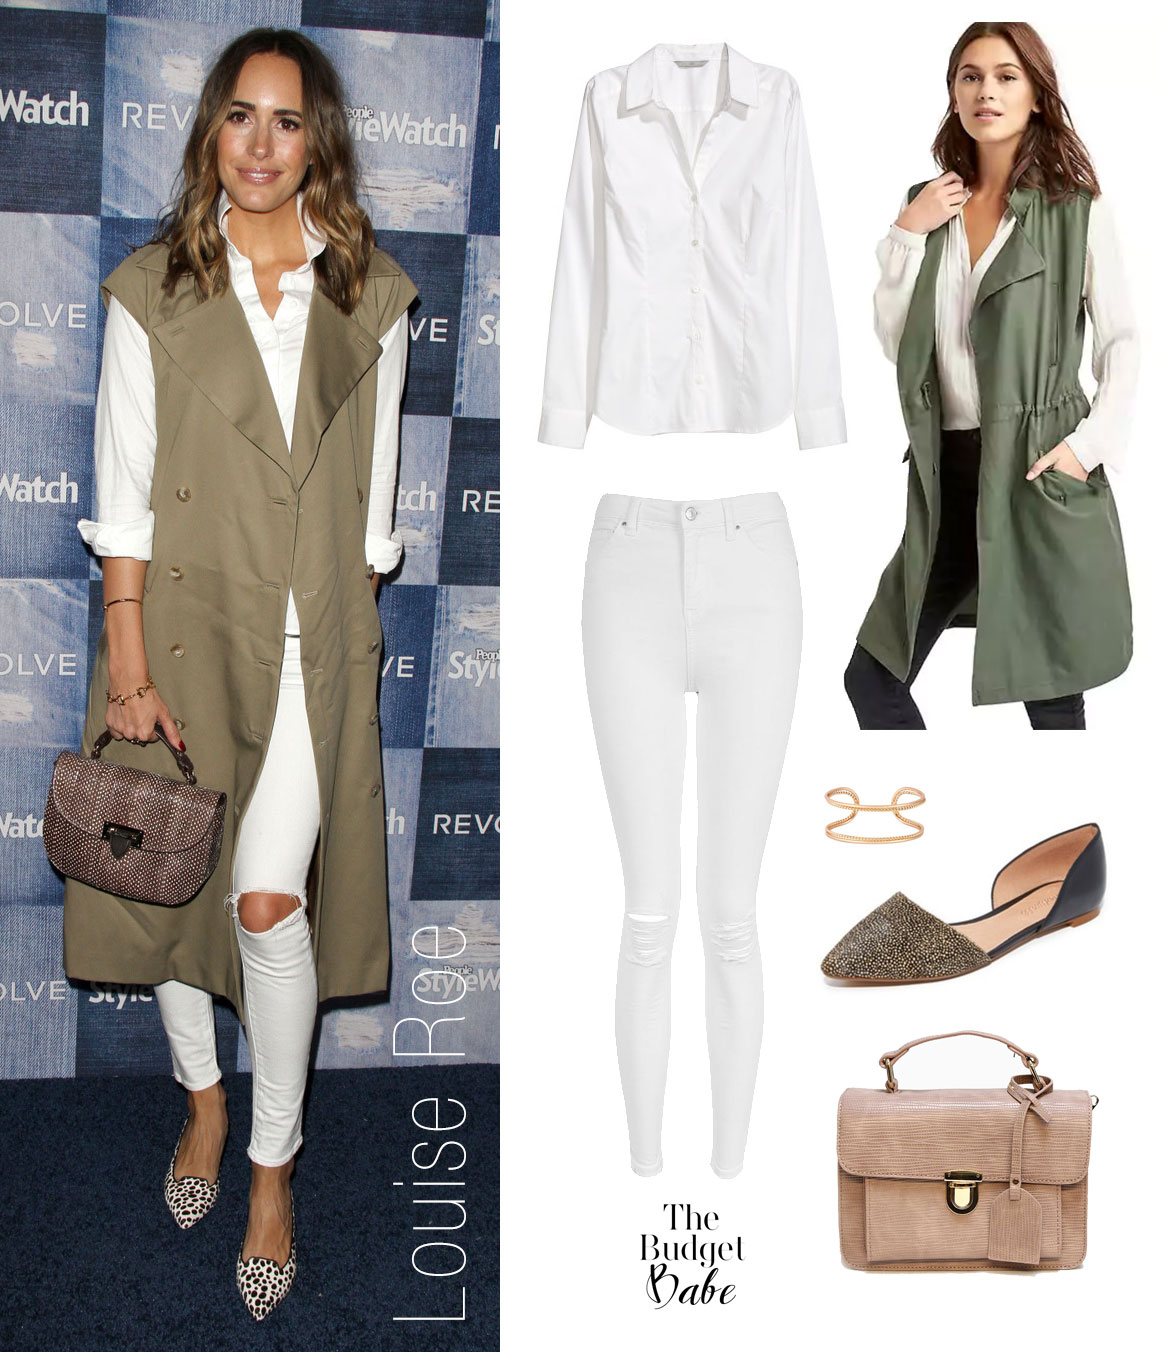 Louise Roe wears a white shirt and white jeans topped with a military style trench vest and pointy toe flats.